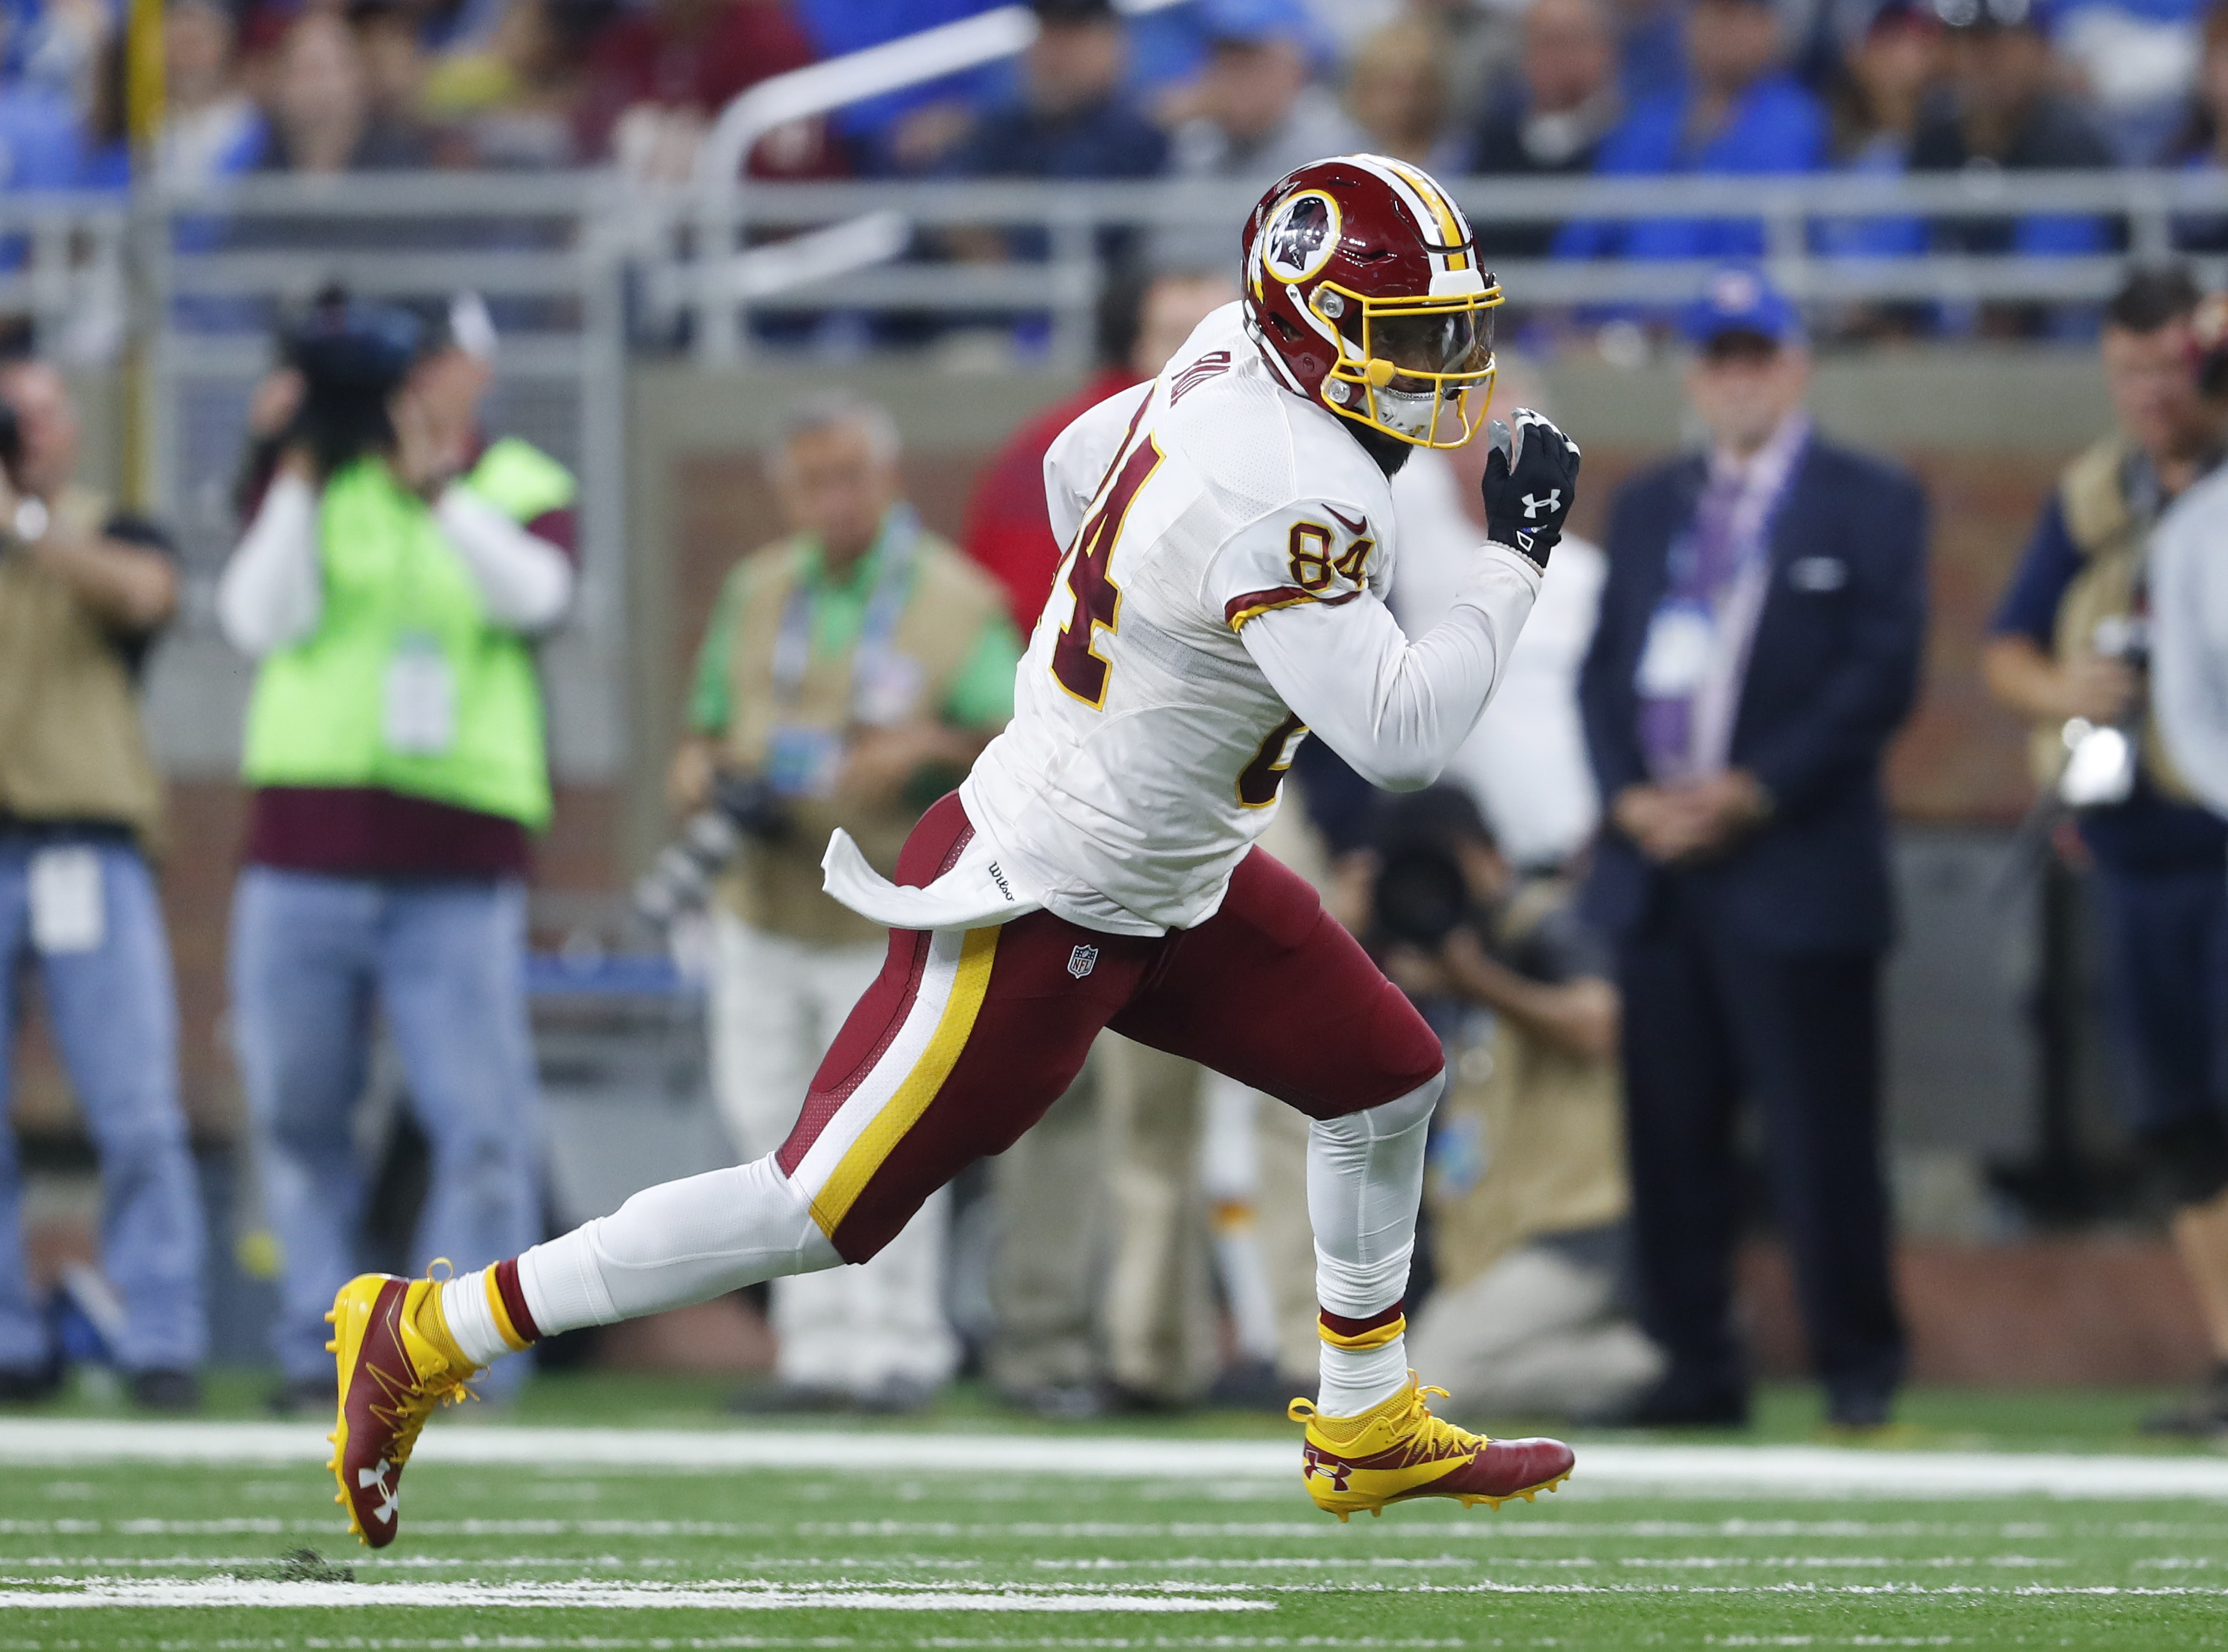 In this photo taken Oct. 24, 2016, Washington Redskins tight end Niles Paul (84) runs after a catch Detroit Lions during an NFL football game in Detroit. The Washington Redskins have placed tight end Niles Paul on injured reserve with a shoulder injury. C